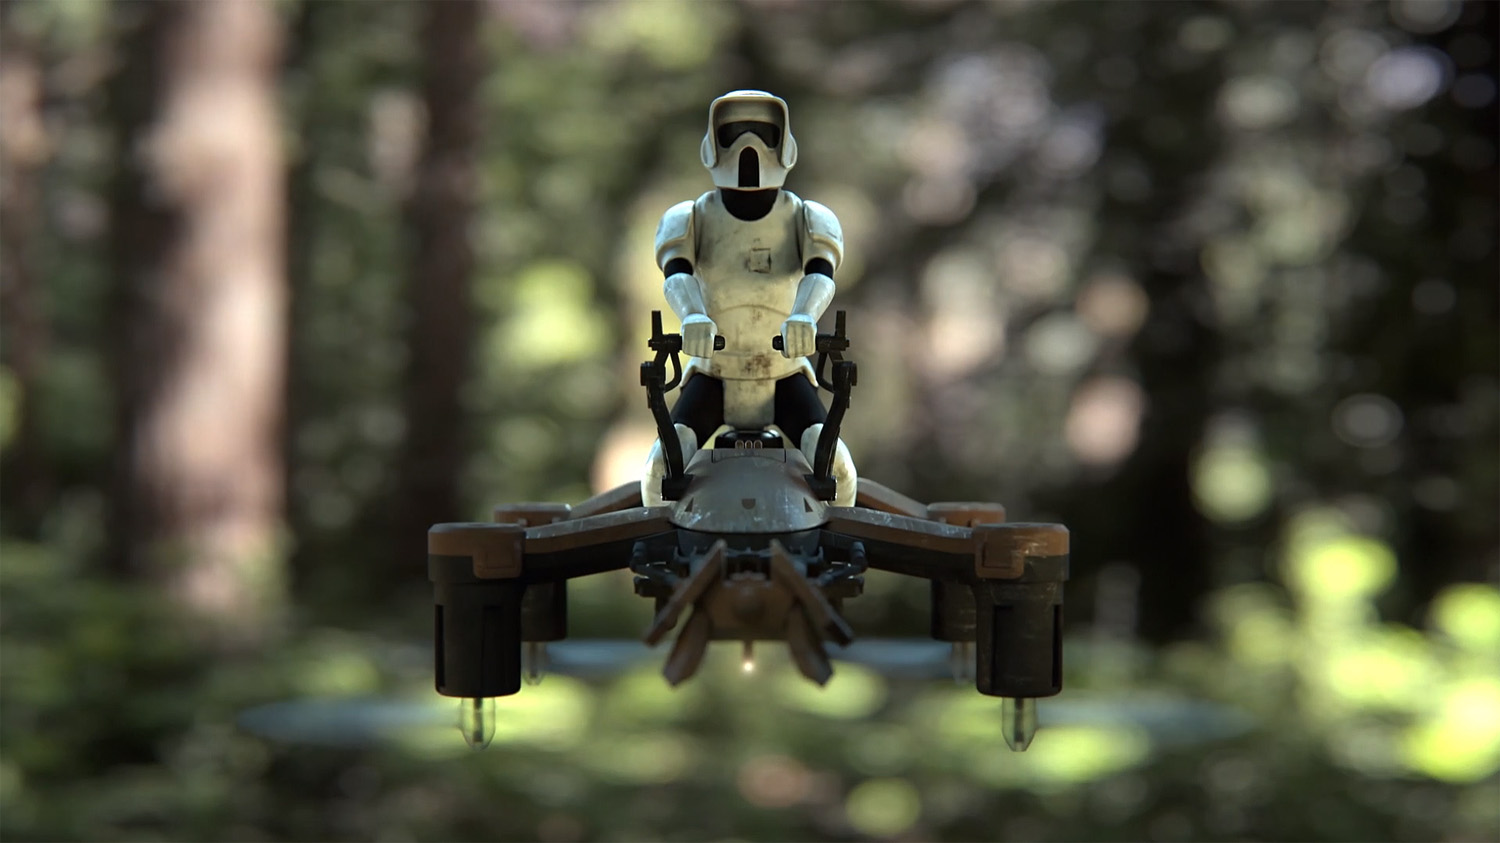 Propel's 74-Z Speeder Bike Star Wars drone